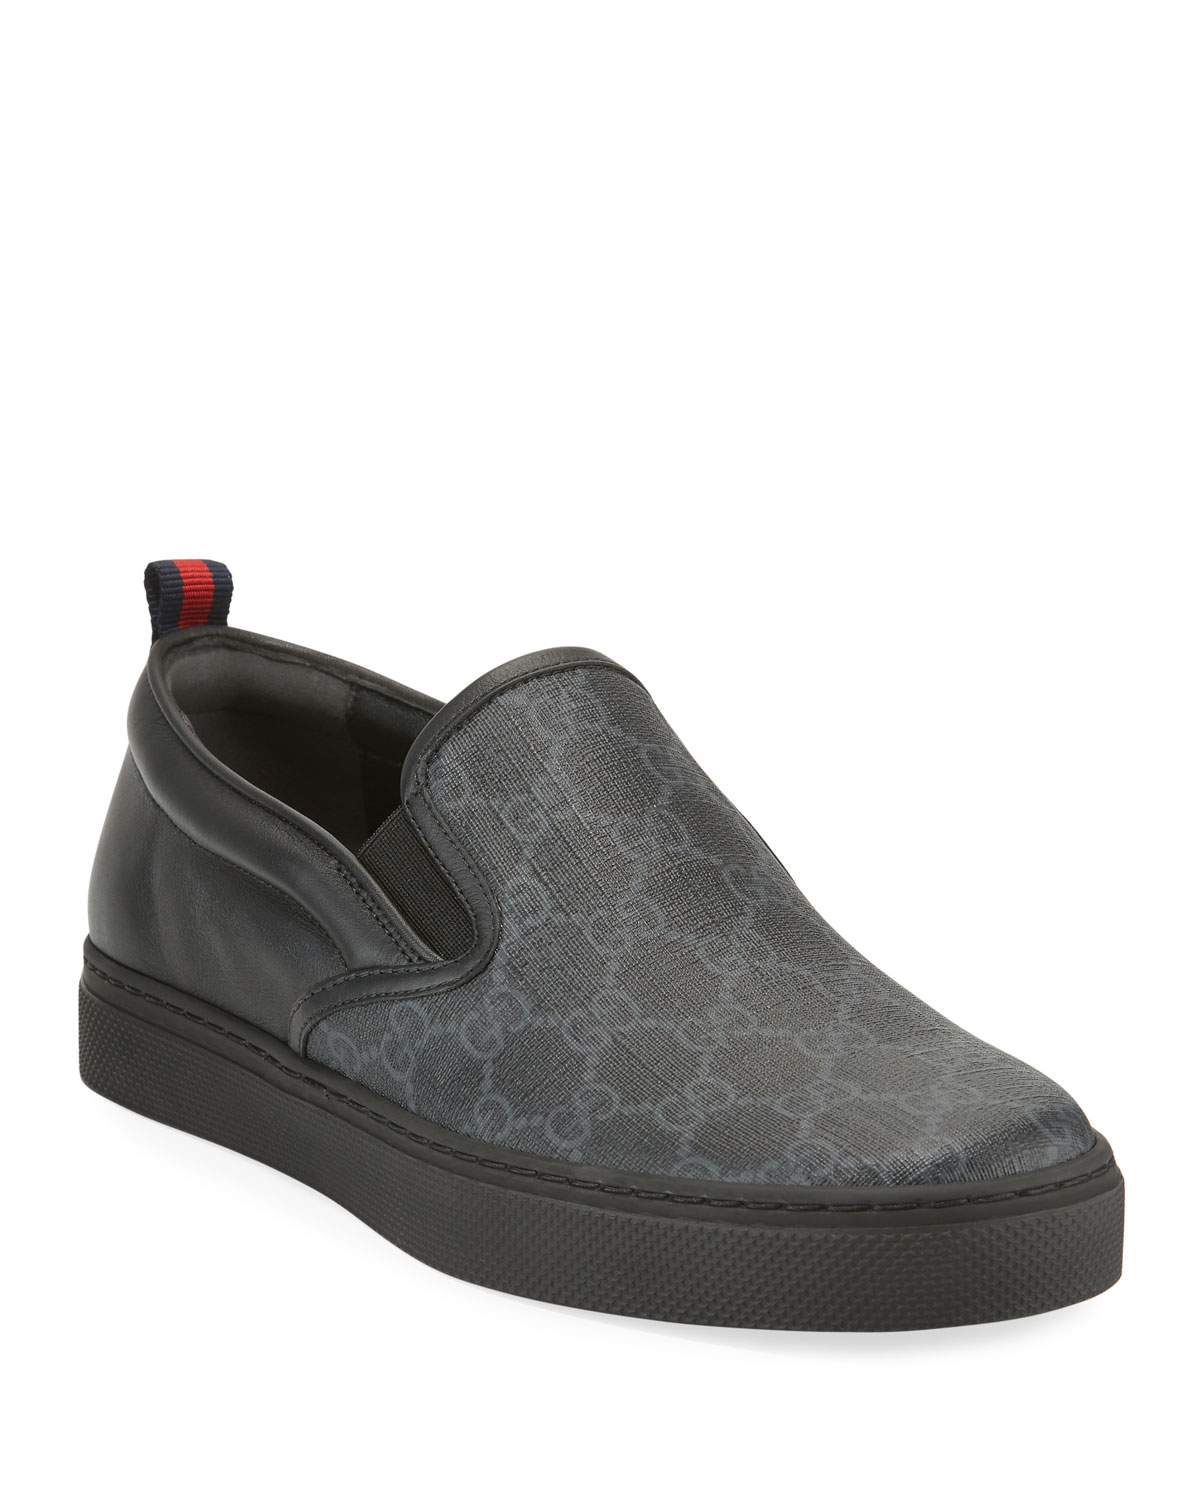 7e253f091 Gucci Men's Dublin Logo Slip-On Sneakers | Neiman Marcus